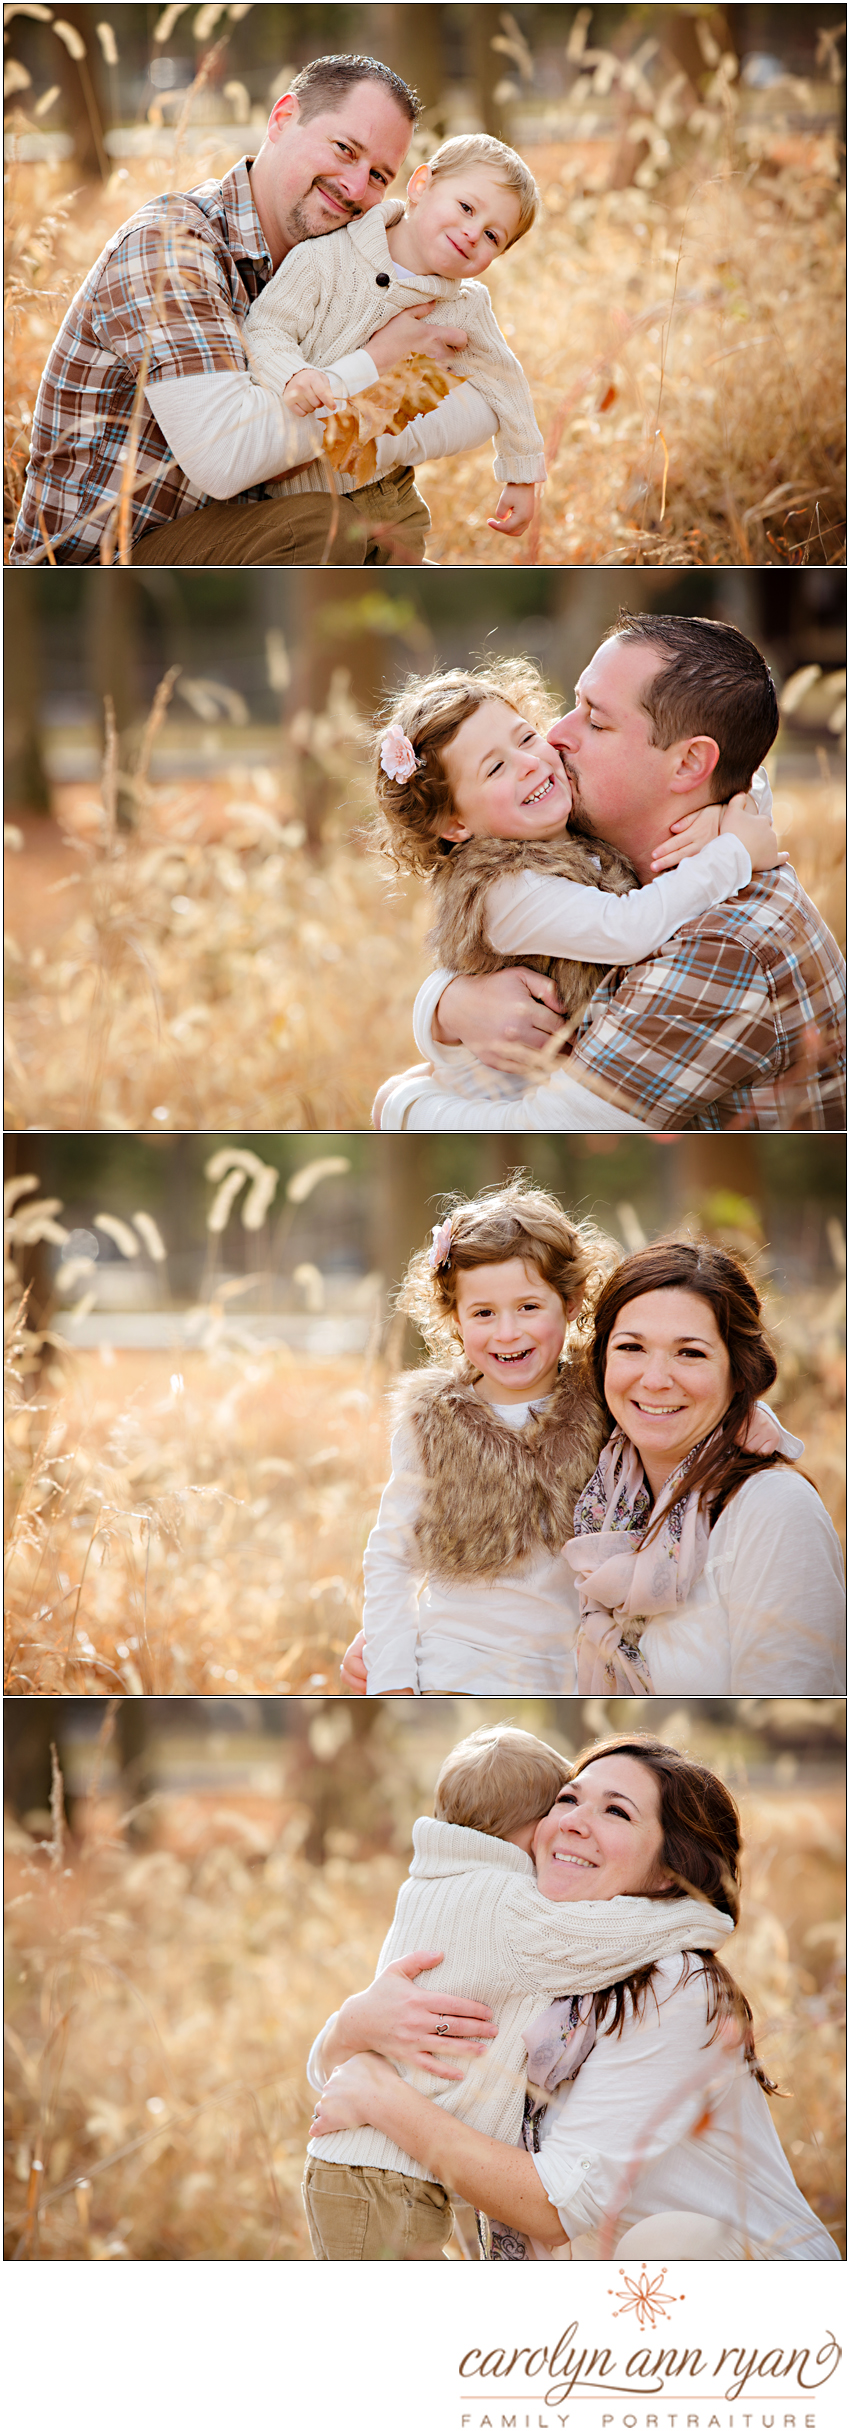 Photographs by Marvin NC Family Photographer Carolyn Ann Ryan